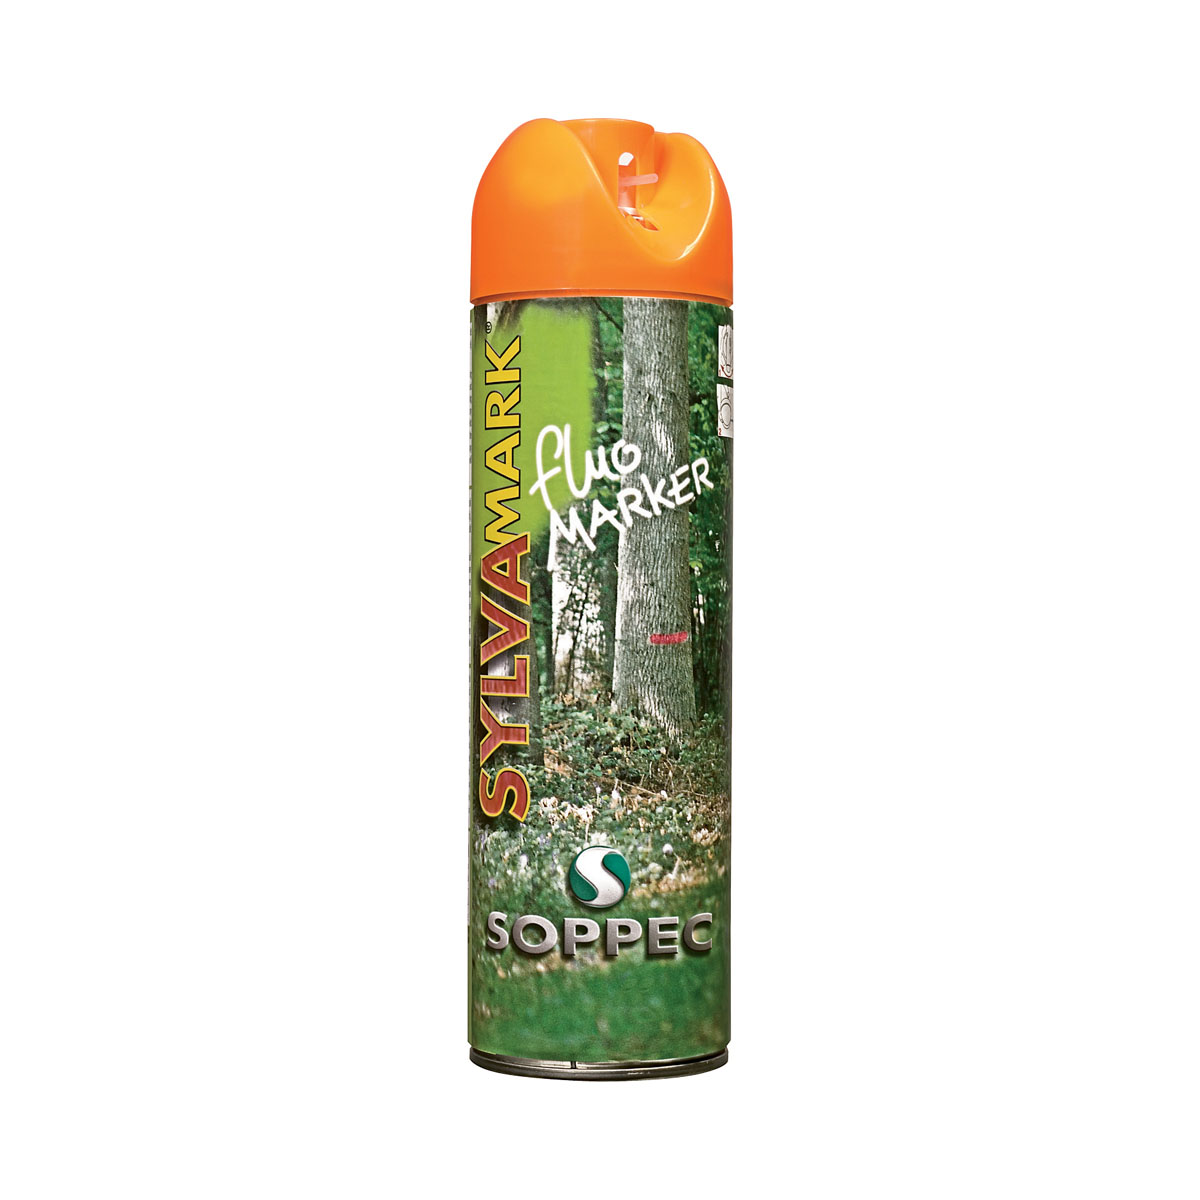 Aérosol traceur forestier, orange fluo, 500 ml